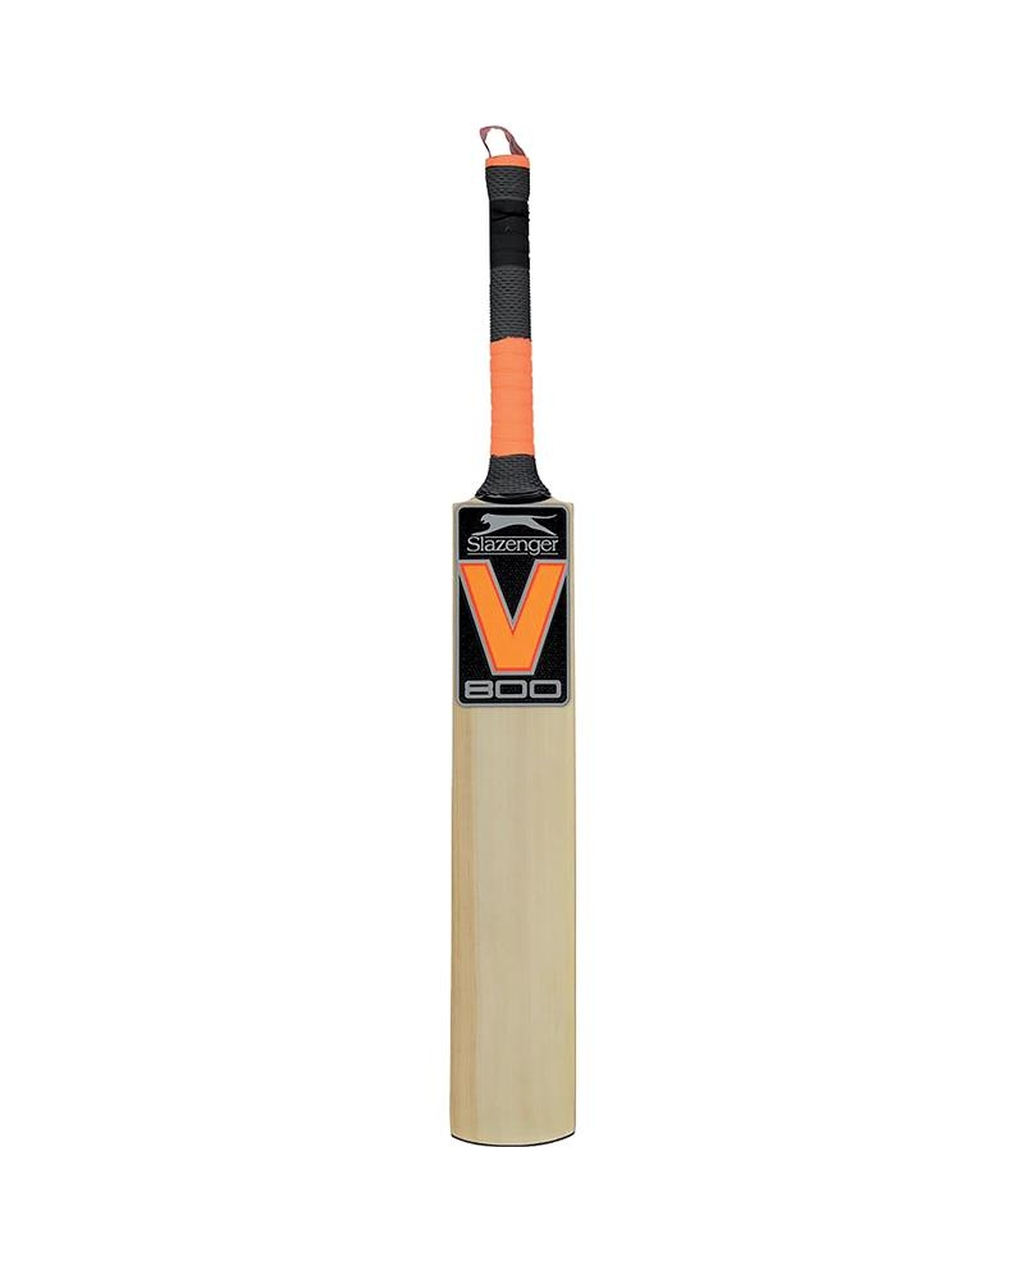 Slazenger V800 Cricket Bat Harrow